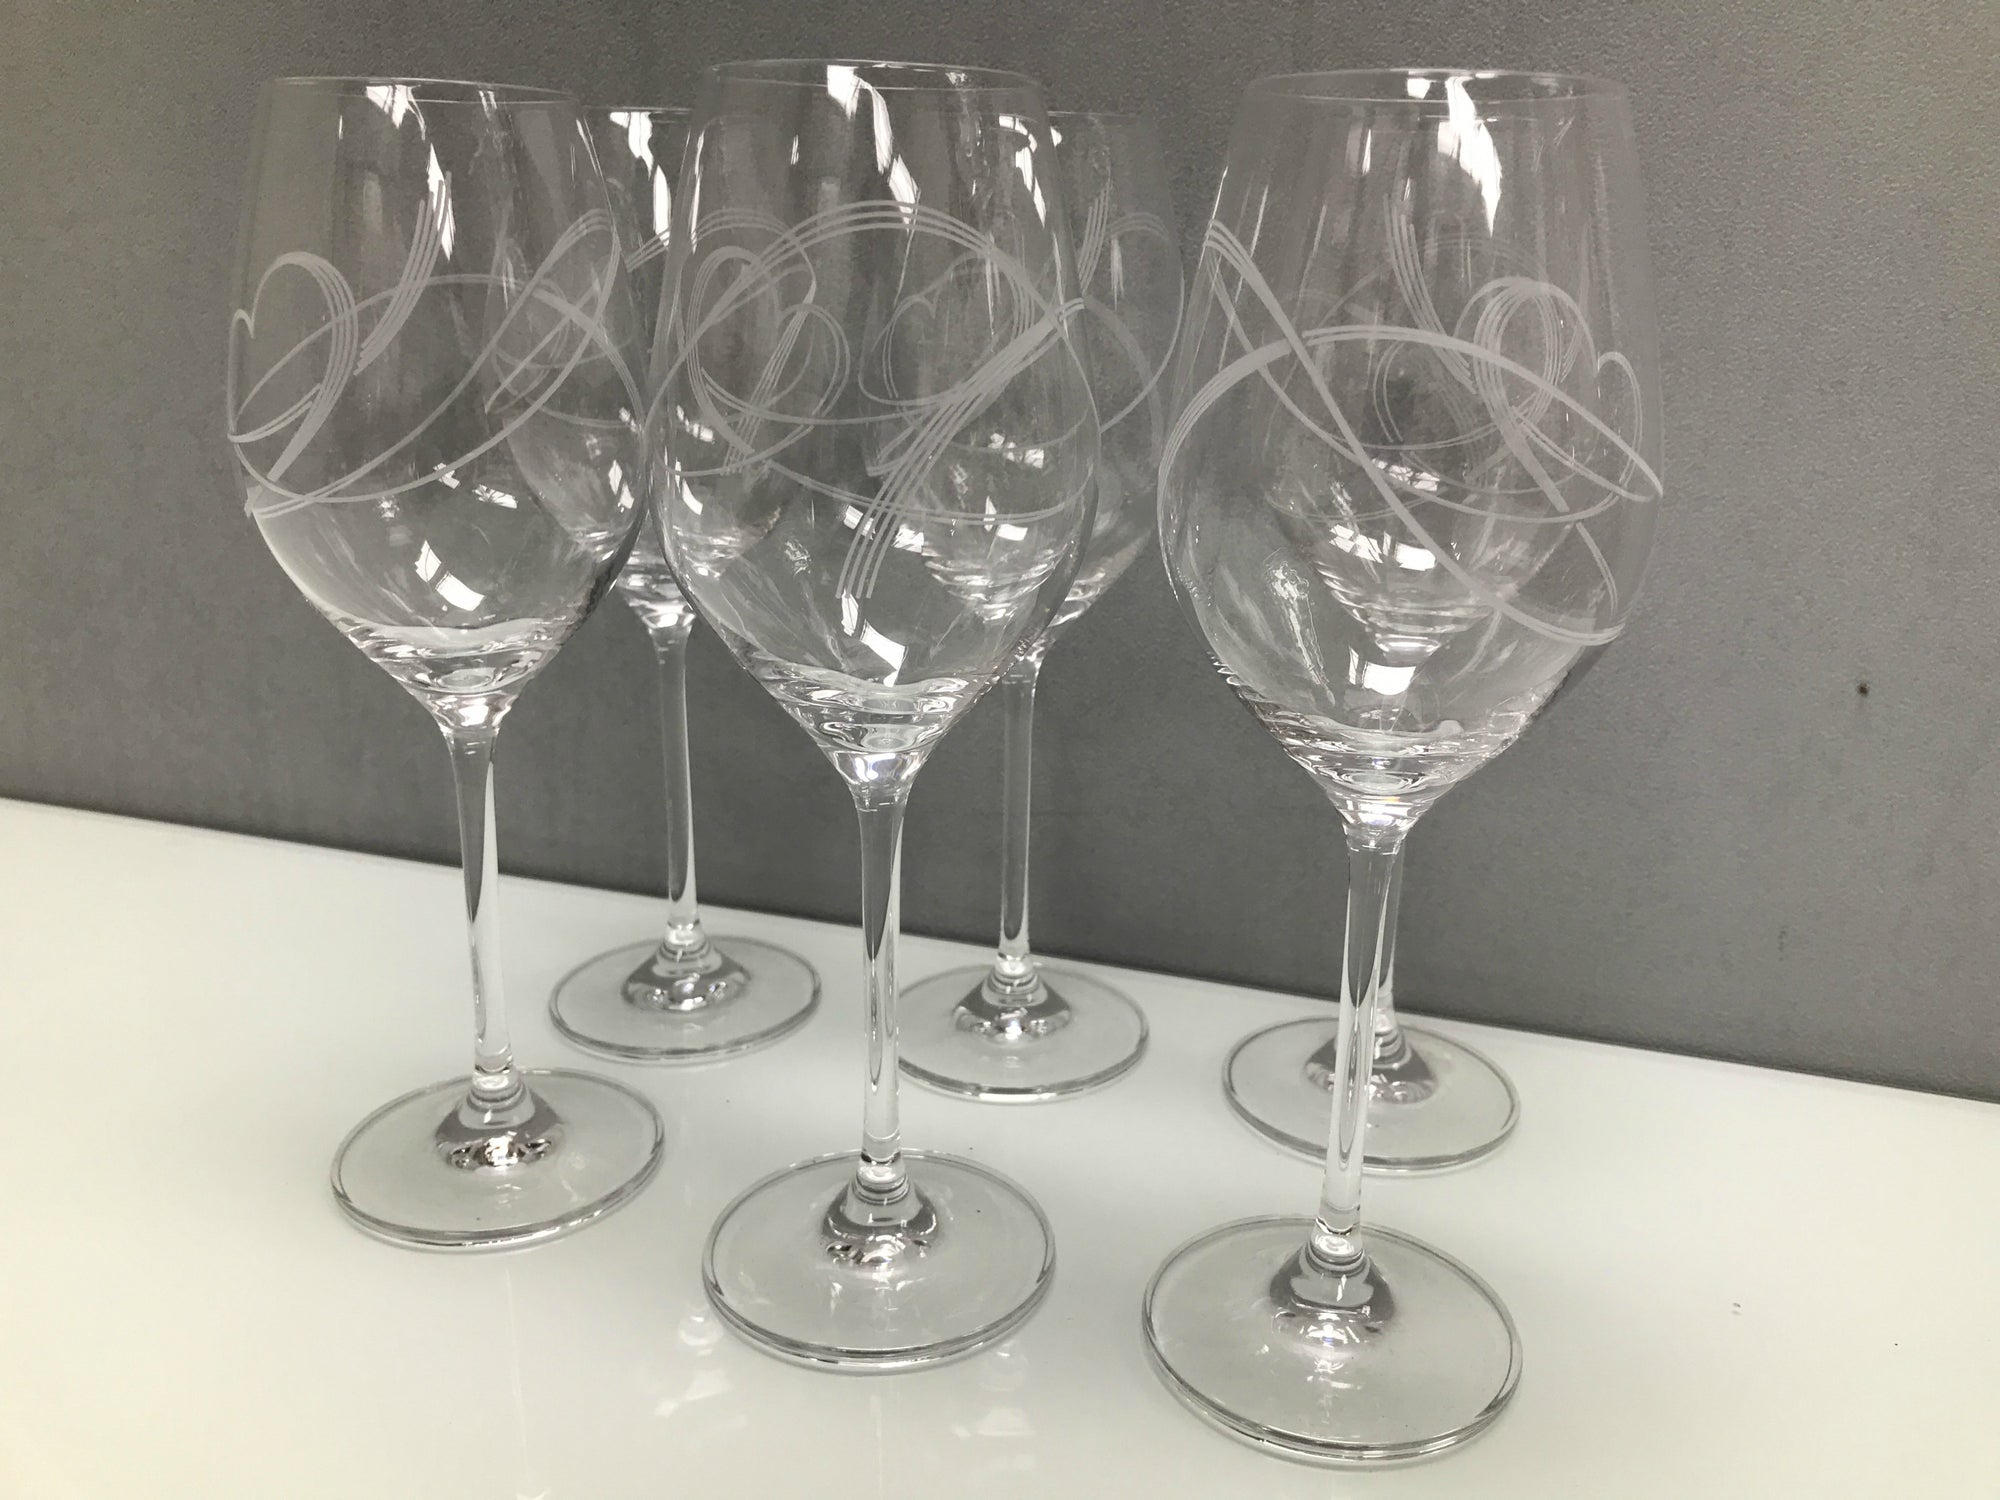 Swirl Heart Wine Glasses - Set of 6